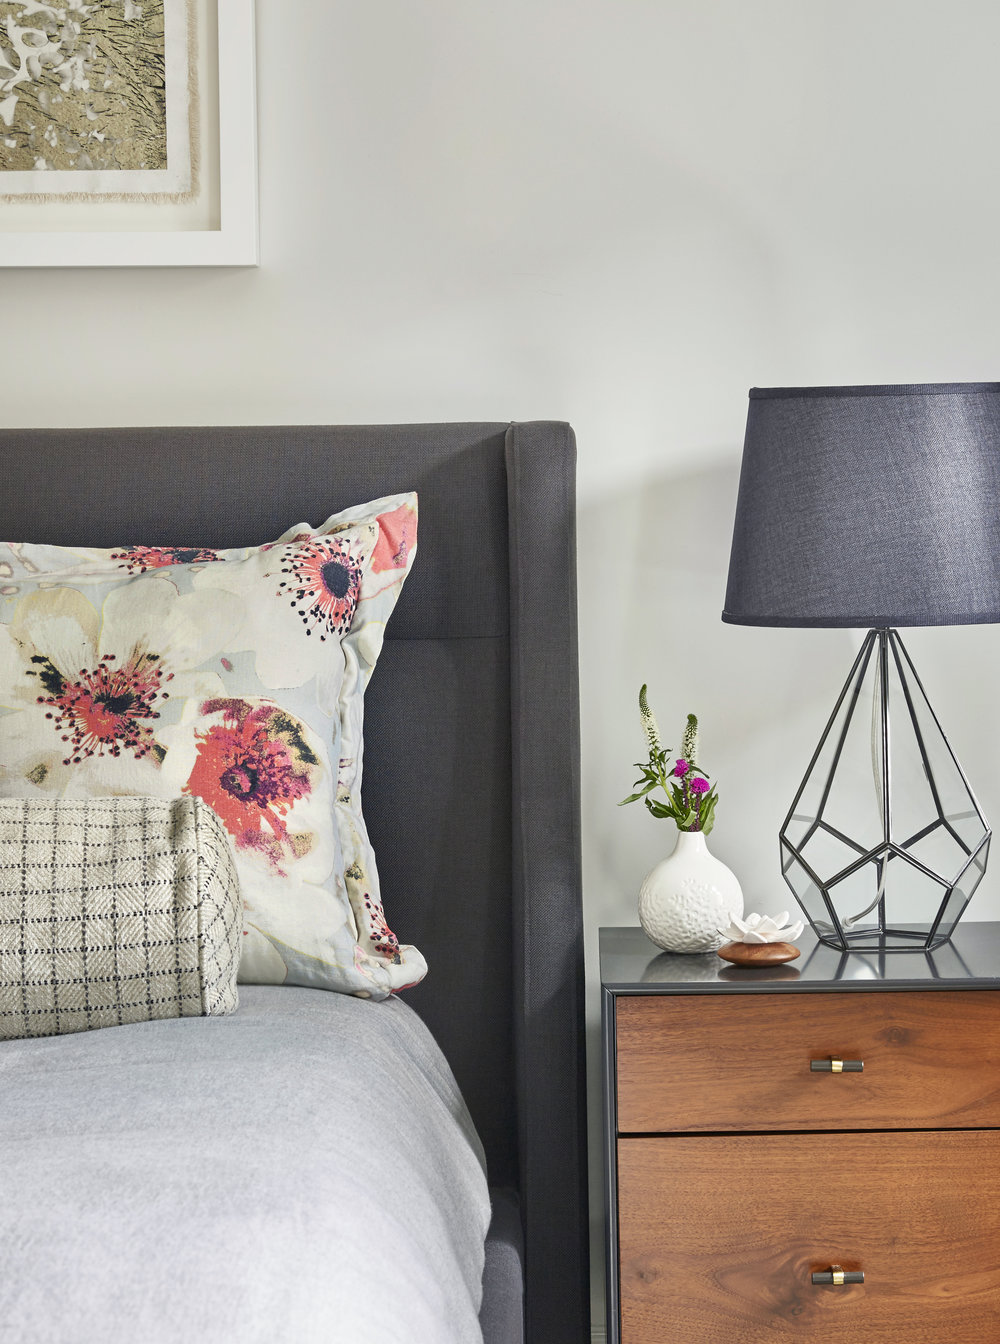 A traditional modern bedroom in grey hues with floral pops, part of our ' Fresh, Fantastic and Fun on 1st Street ' project.